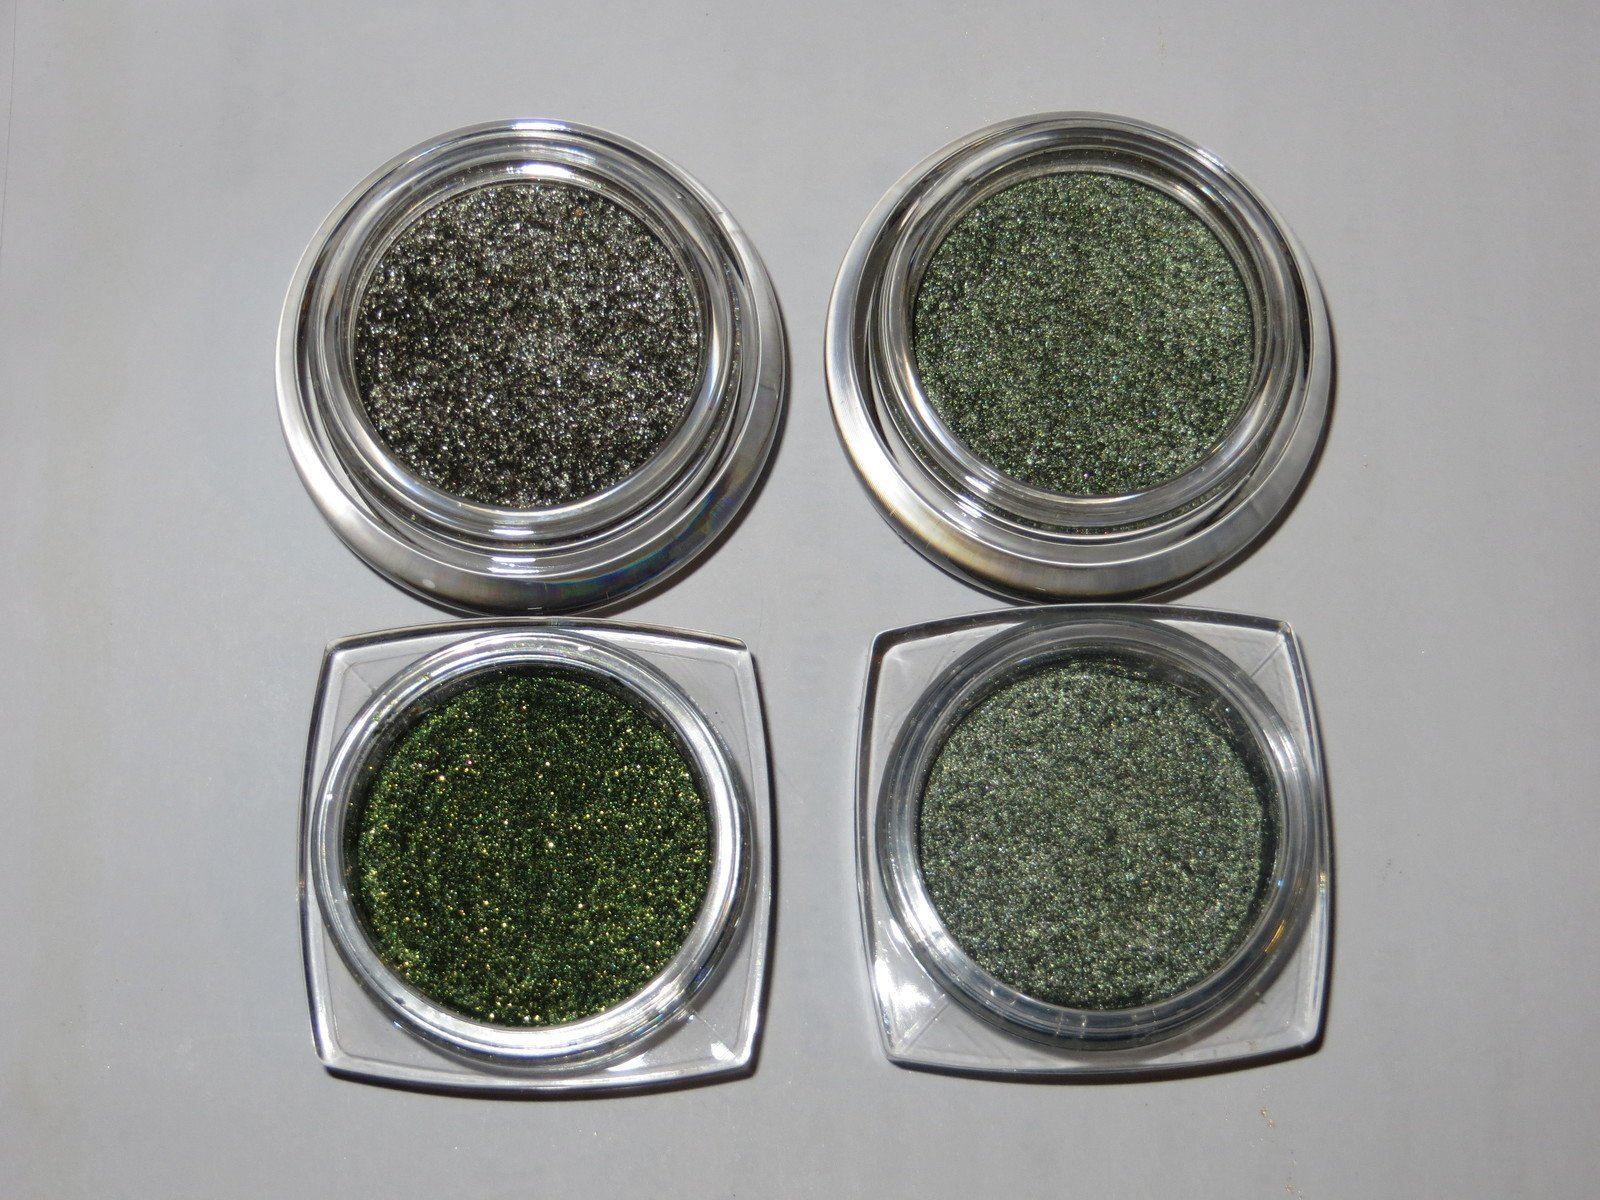 make kiko eyeshadow saira up in eyeshadows water emerald golden pic lee green by